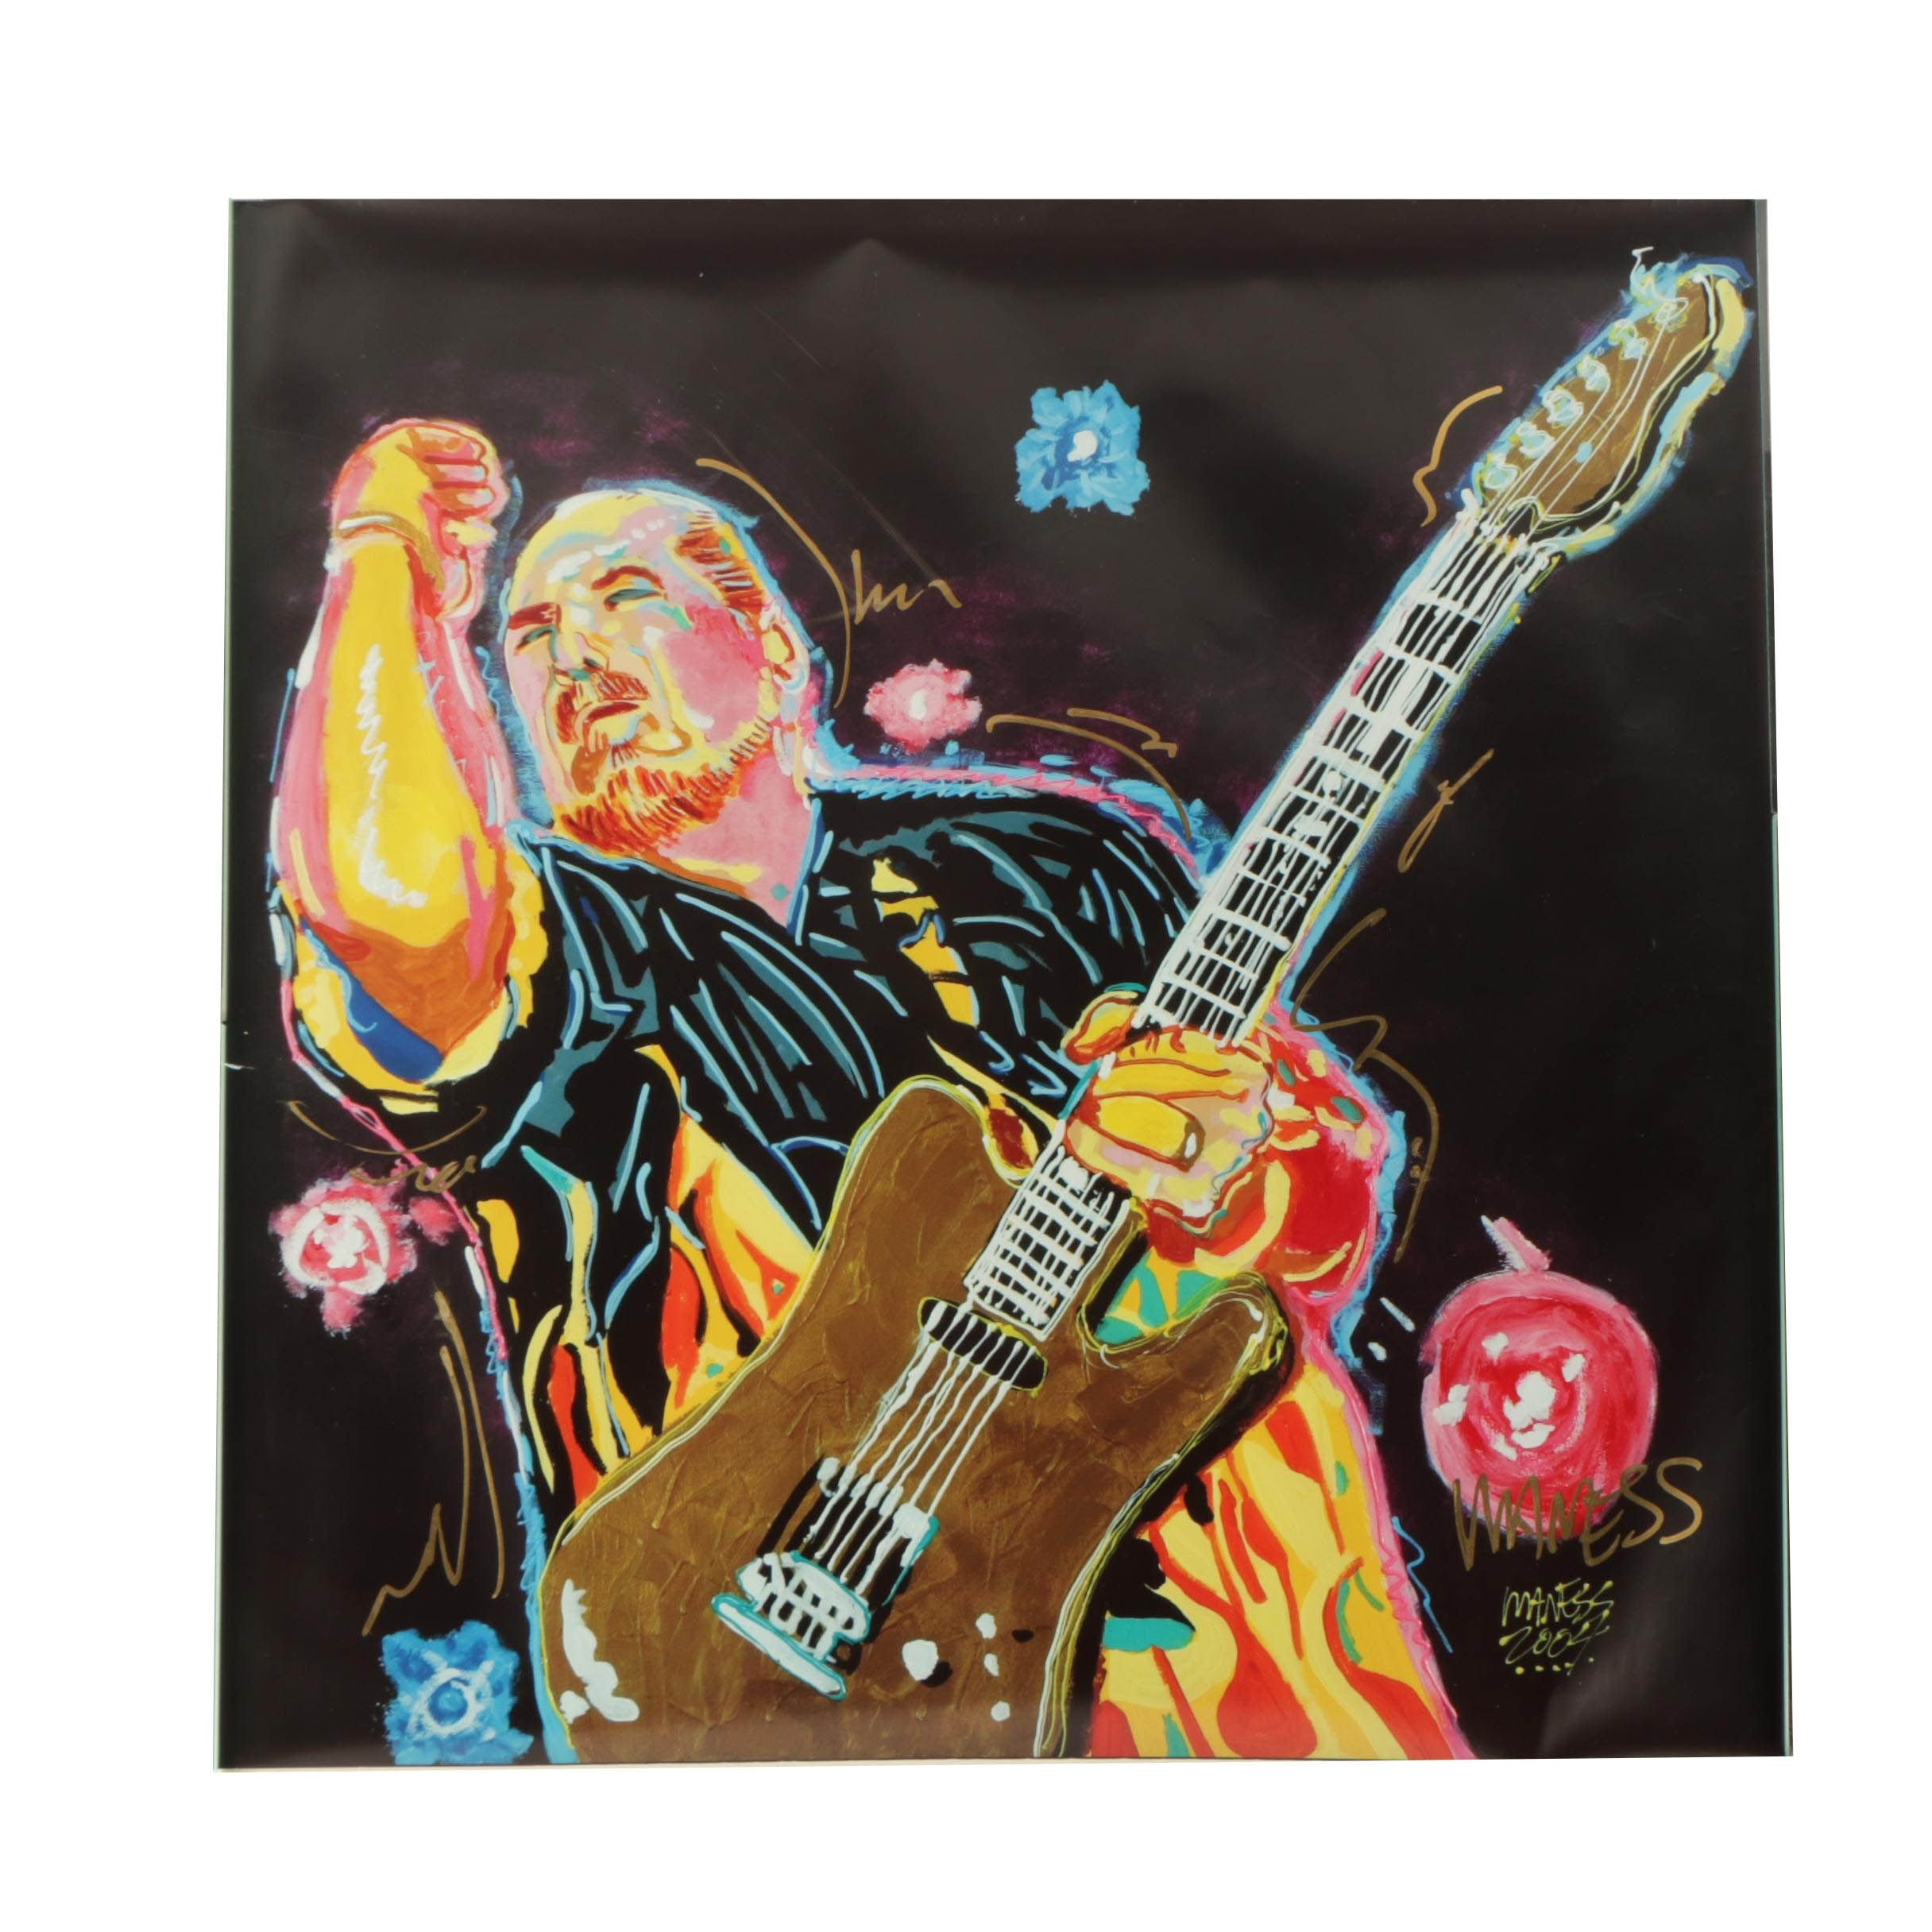 Maness 2004 Hand-Embellished Giclée Print on Paper of Guitar Player